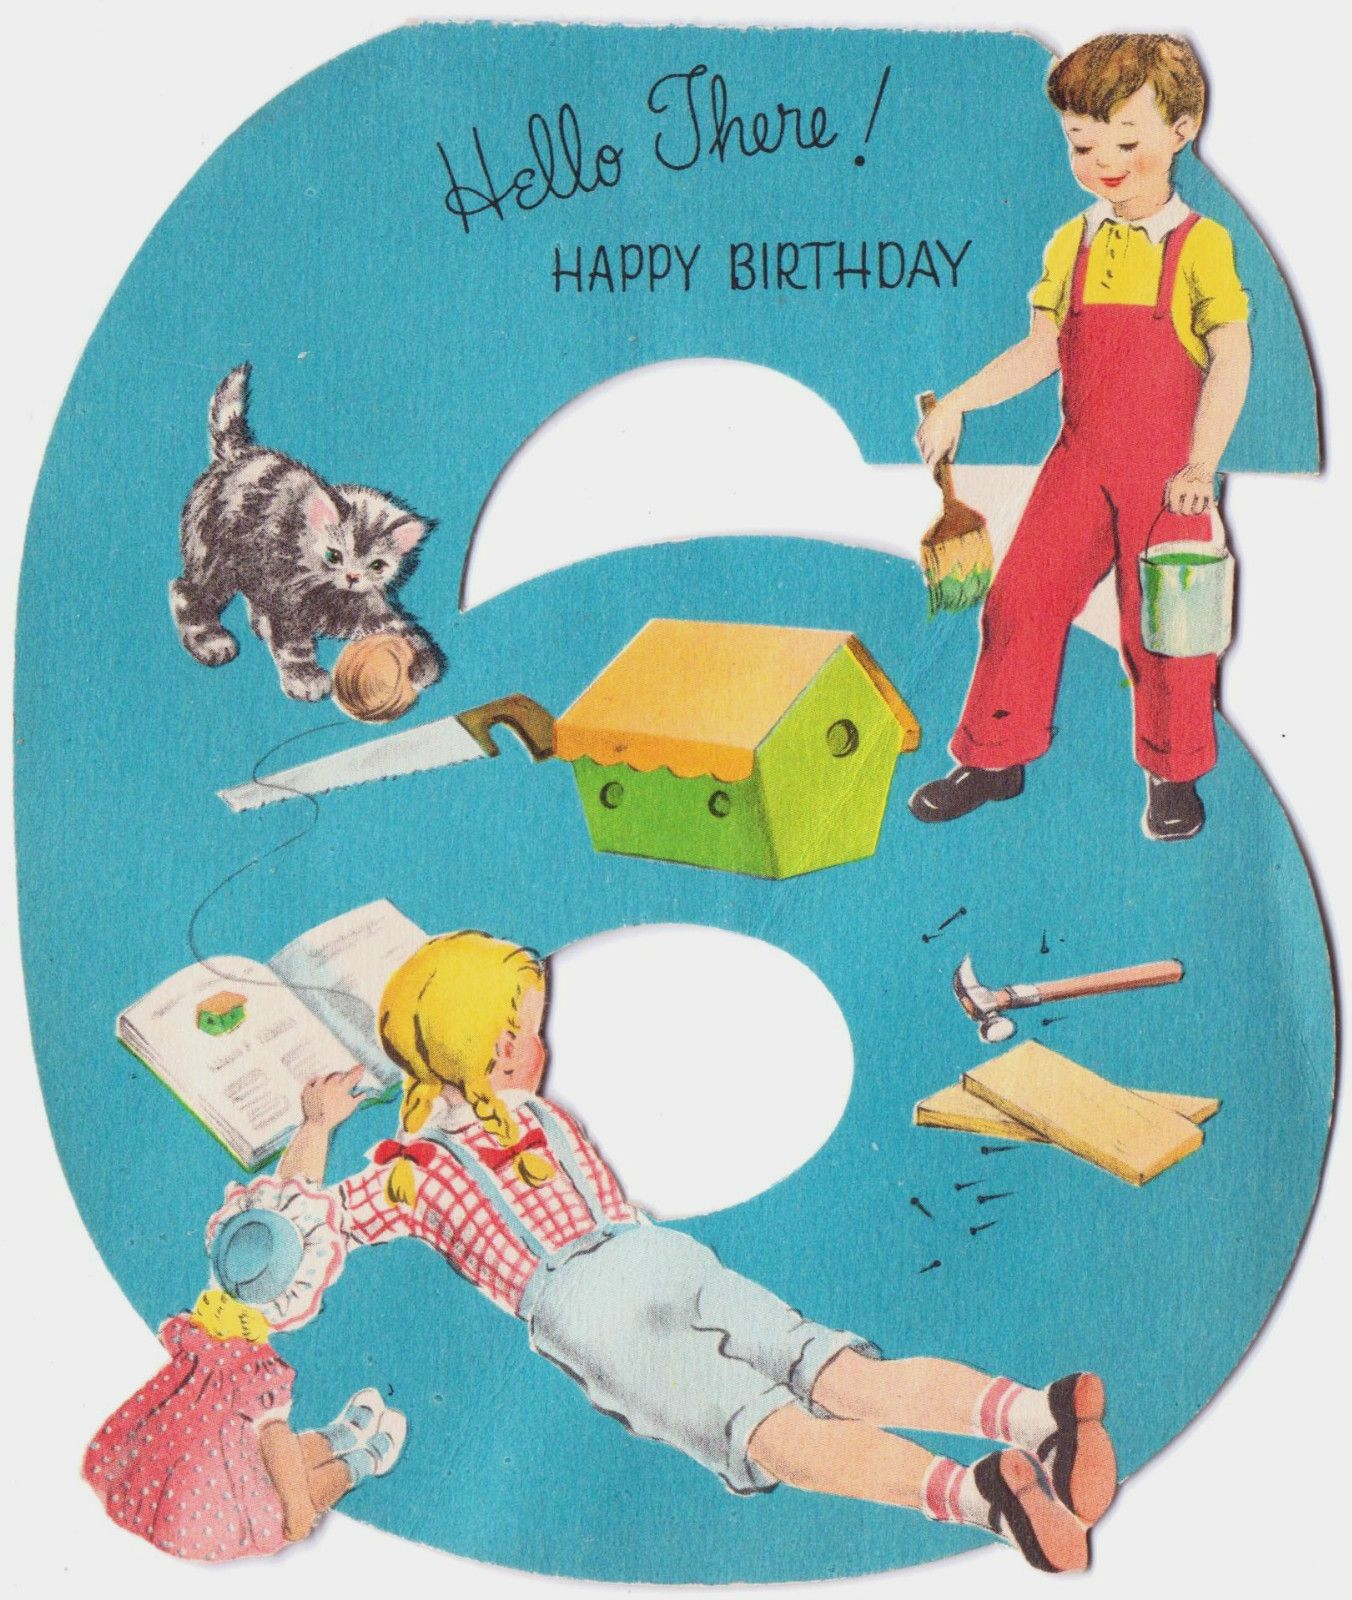 Vintage Birthday Card For 6 Year Old